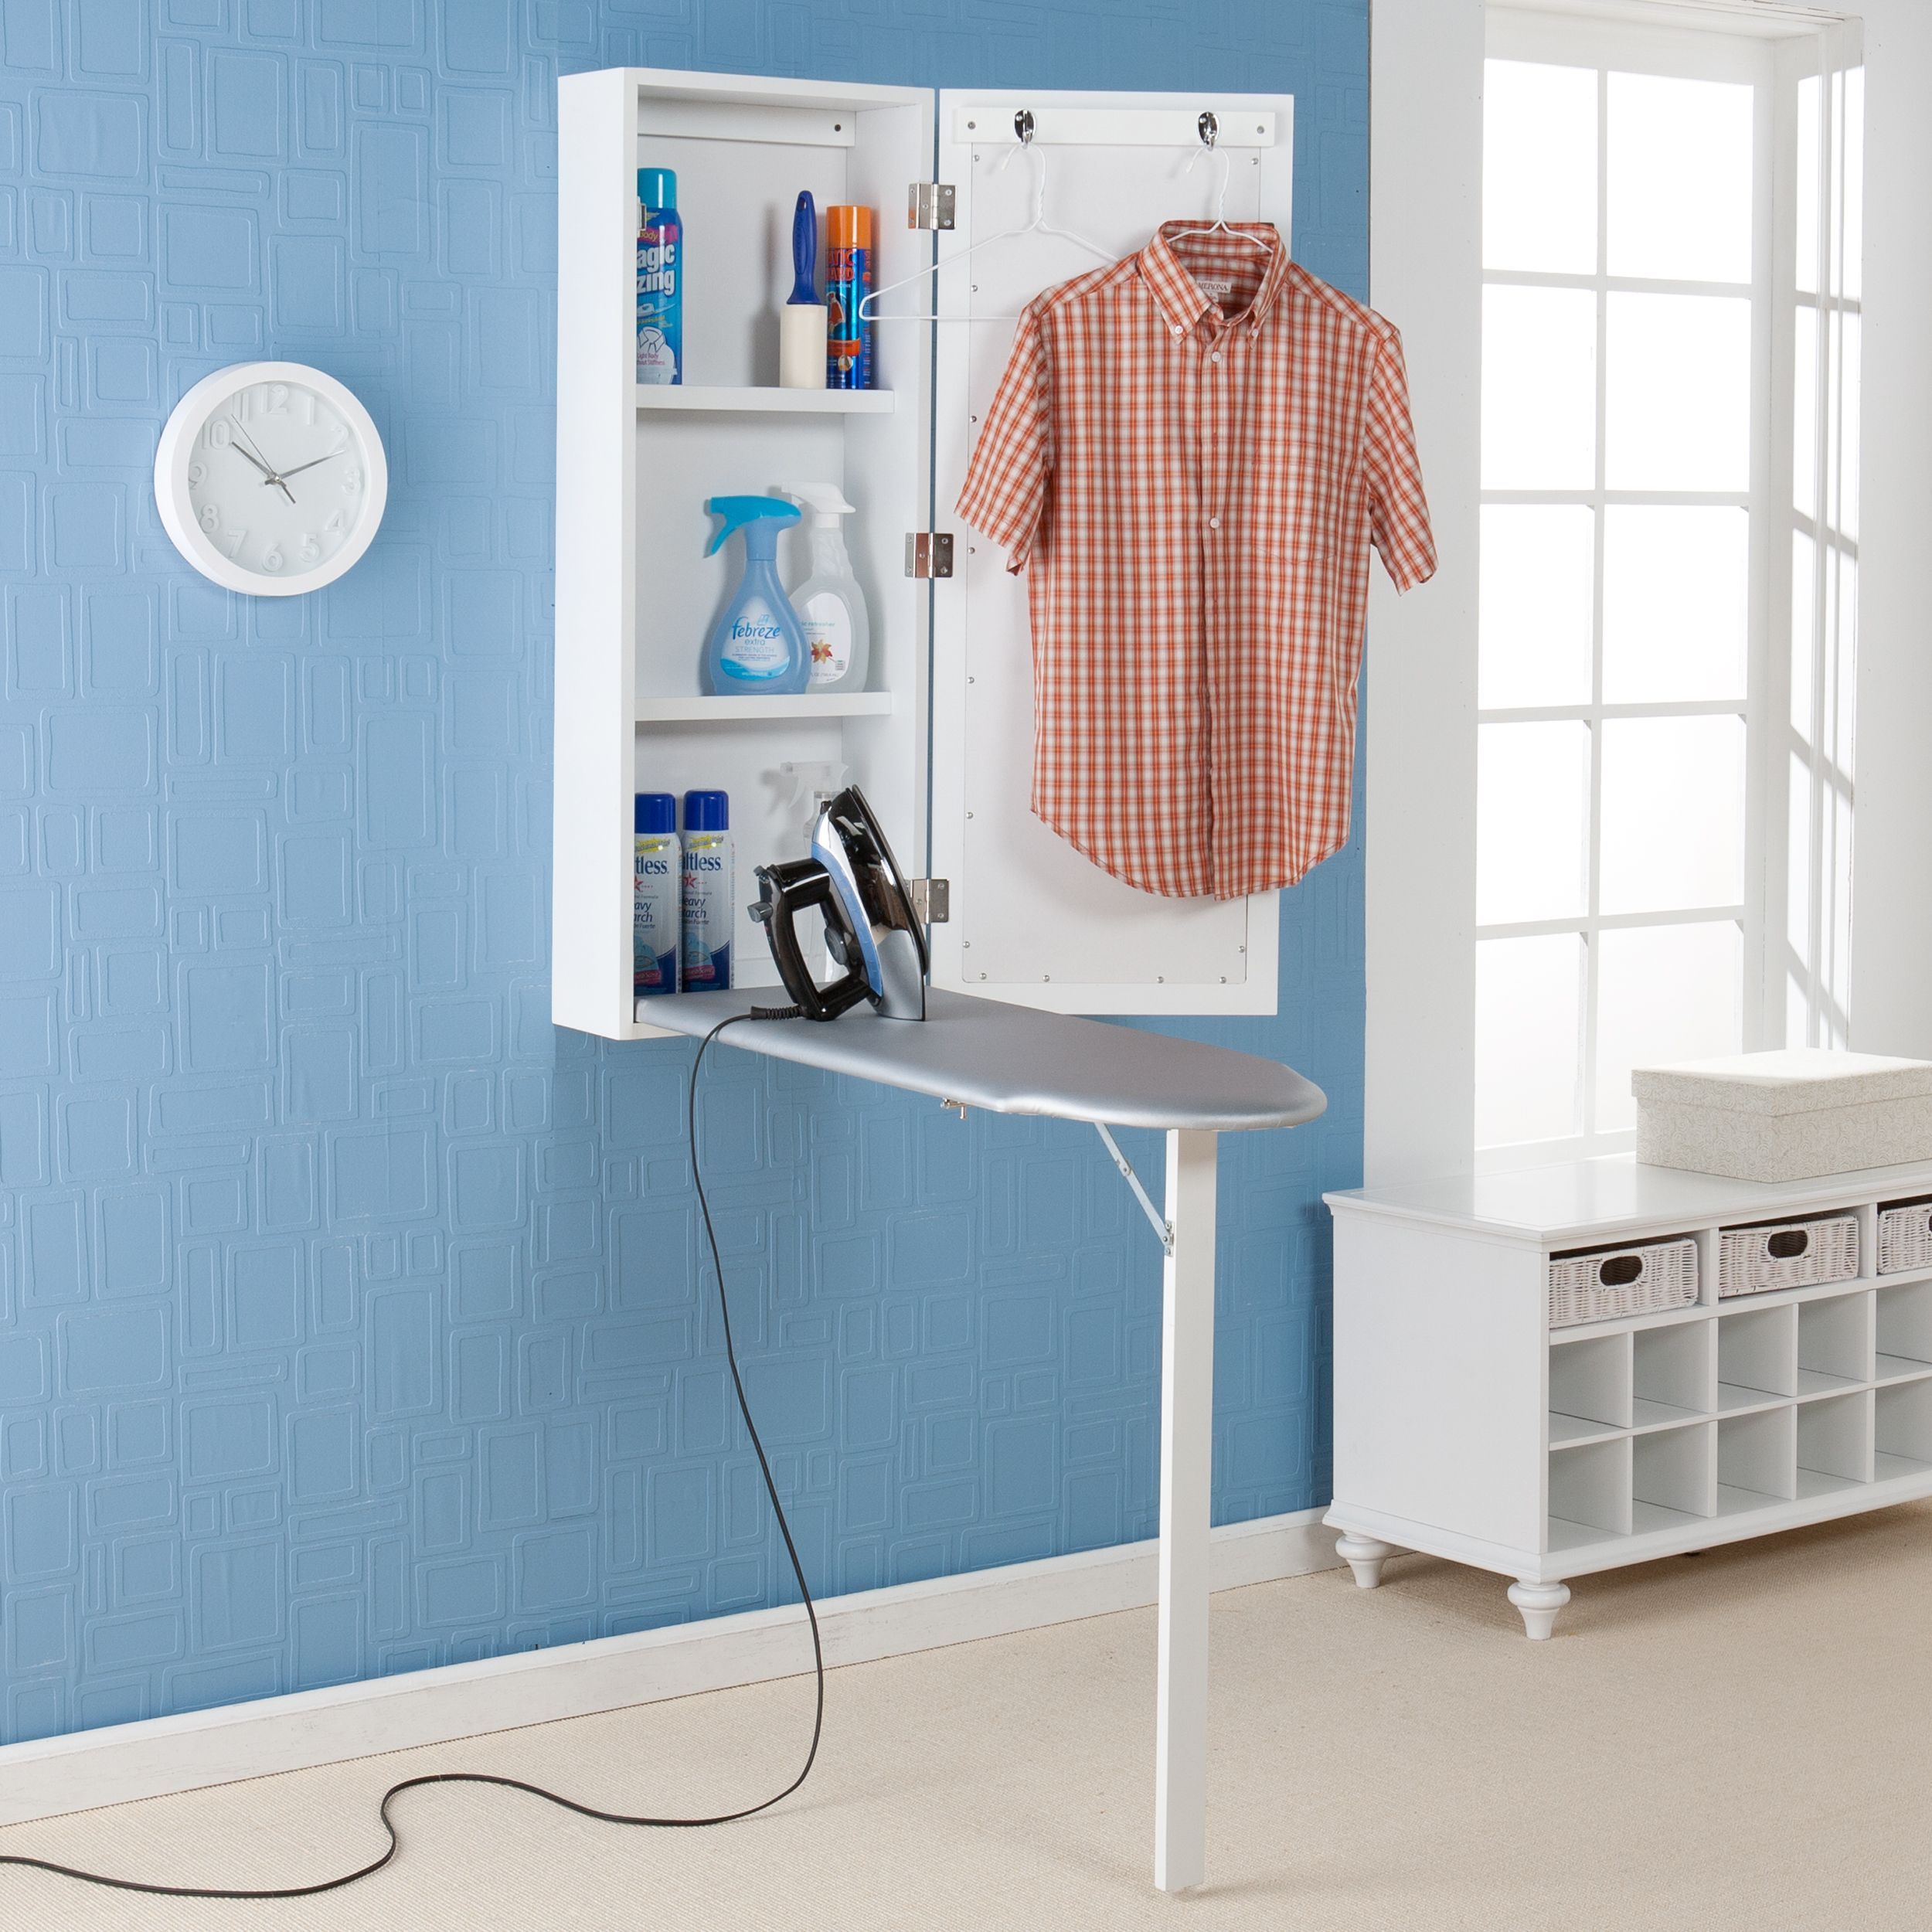 Wall Mounted Ironing Board And Storage Center Laundry Room